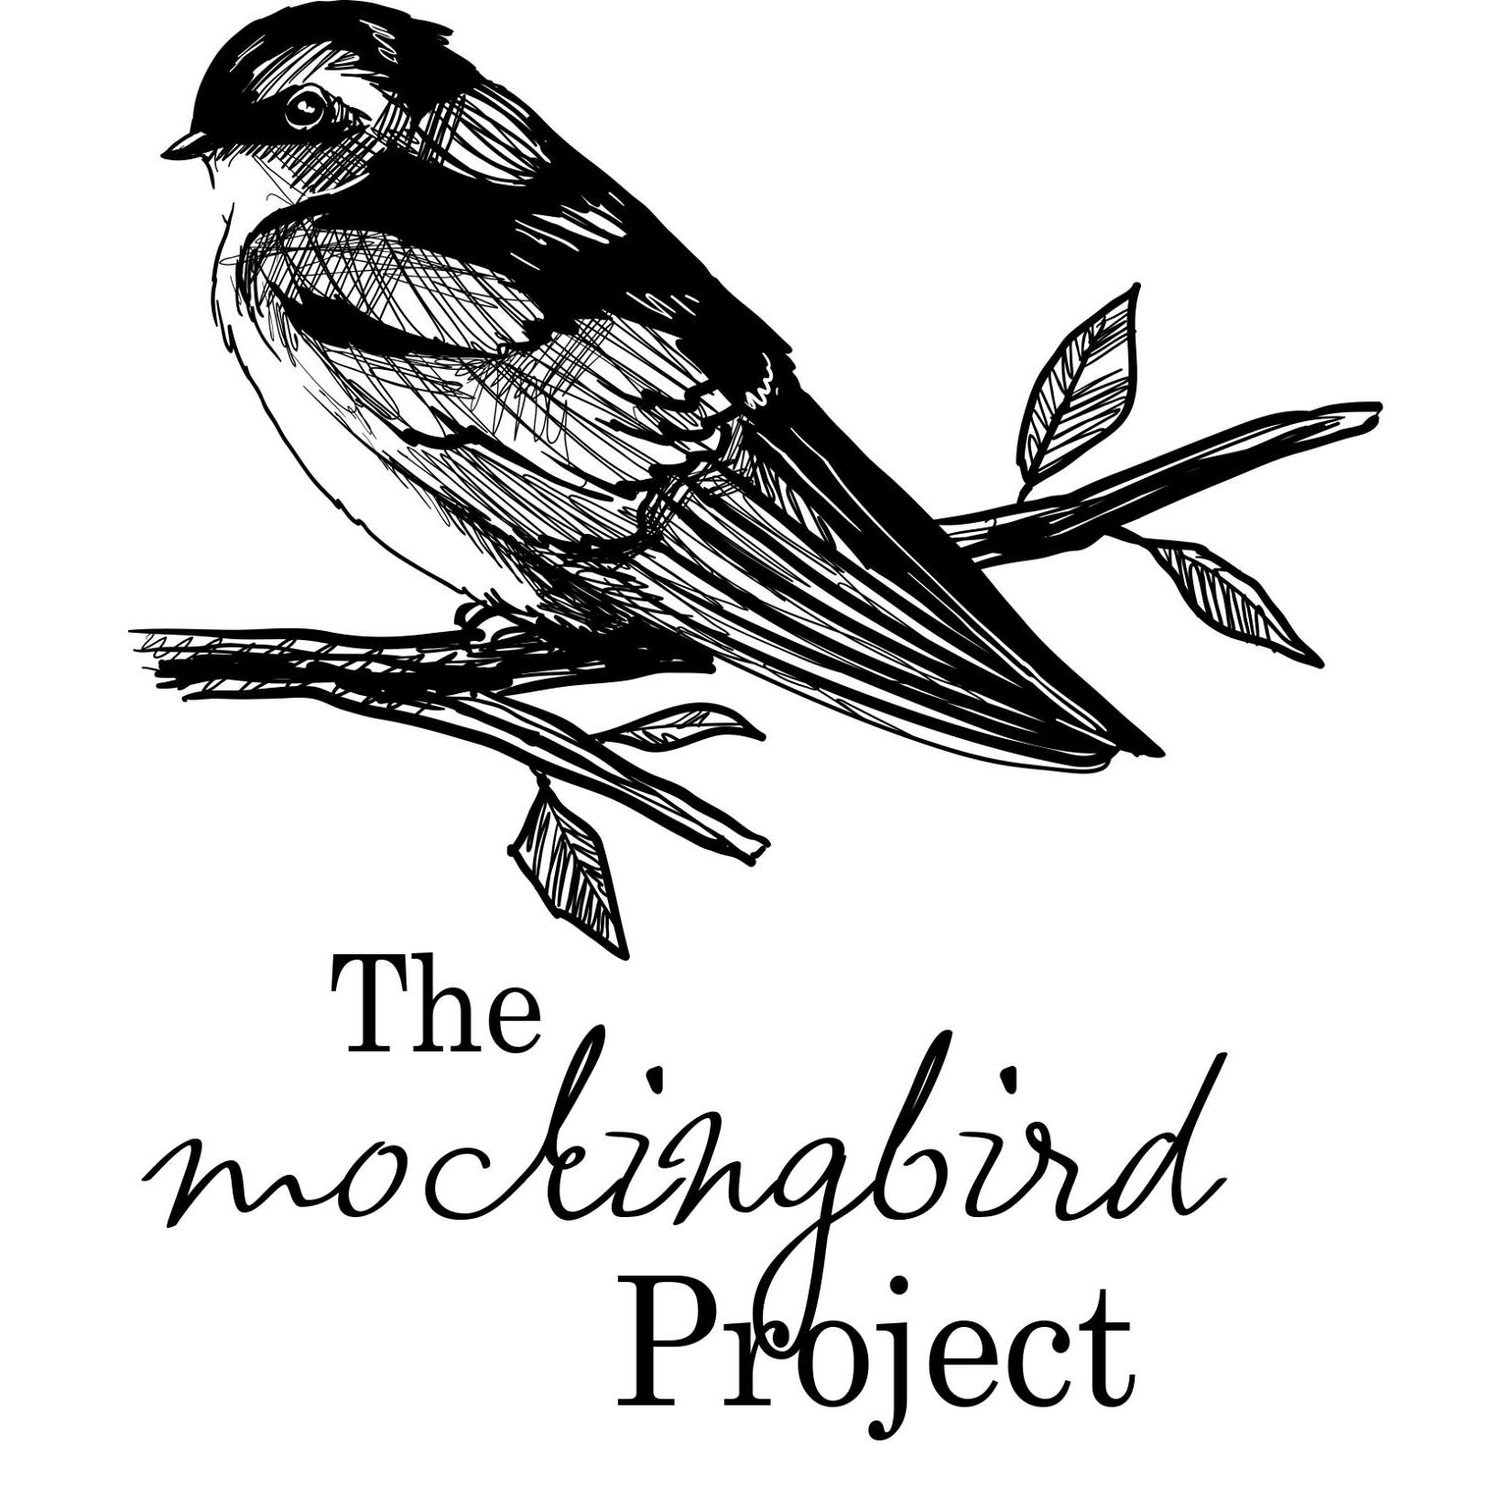 The Mockingbird Project